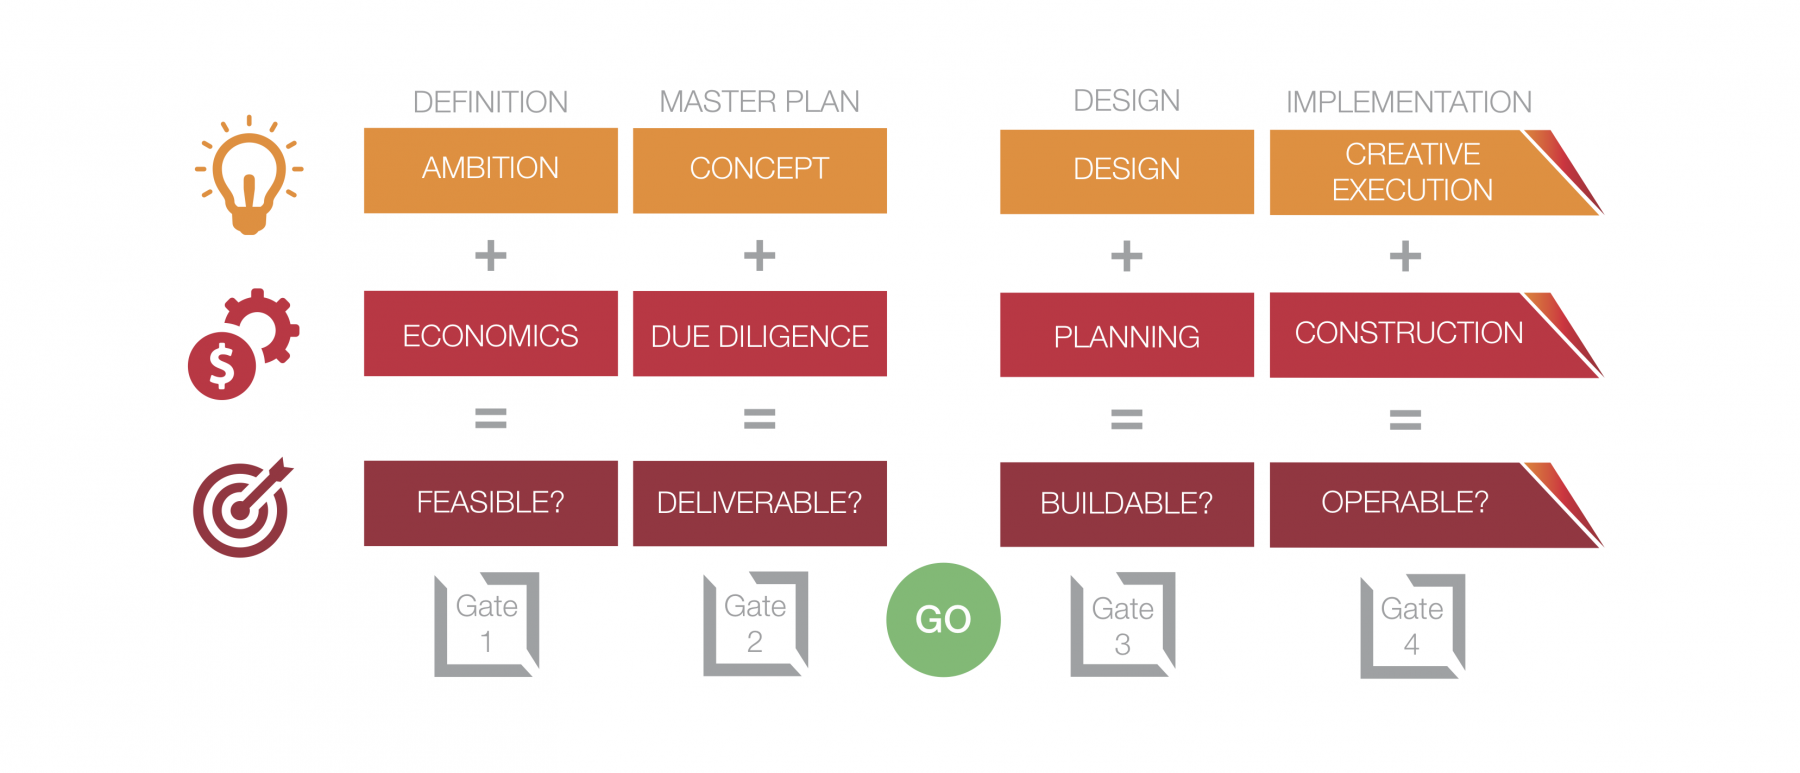 Why Is Process So Important in Themed Construction Management?